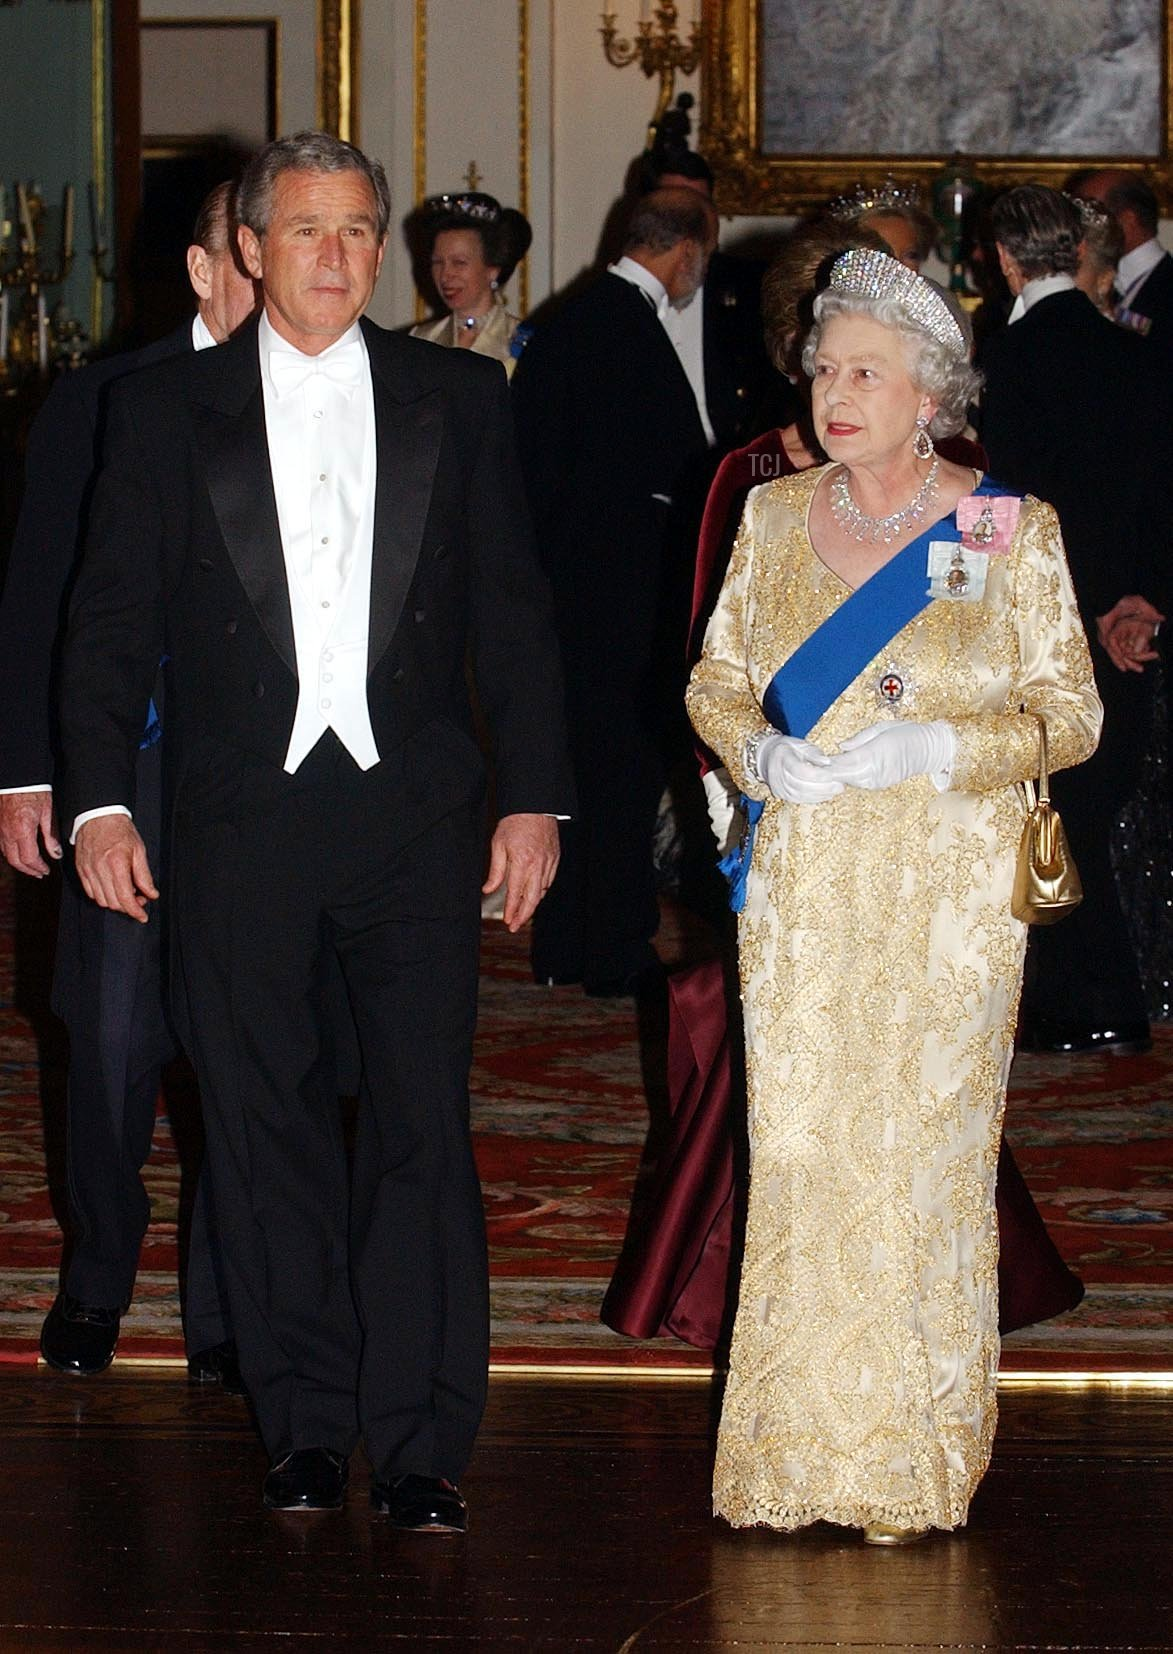 Britain's Queen Elizabeth II arrives with US President George W.Bush, 19 November 2003 for the Buckingham Palace state banquet in honour of the US President, during the first day of his four-day state visit to the U.K. Where the Queen told President George Bush tonight that Britain and the US stood firm in their determination to defeat terrorism